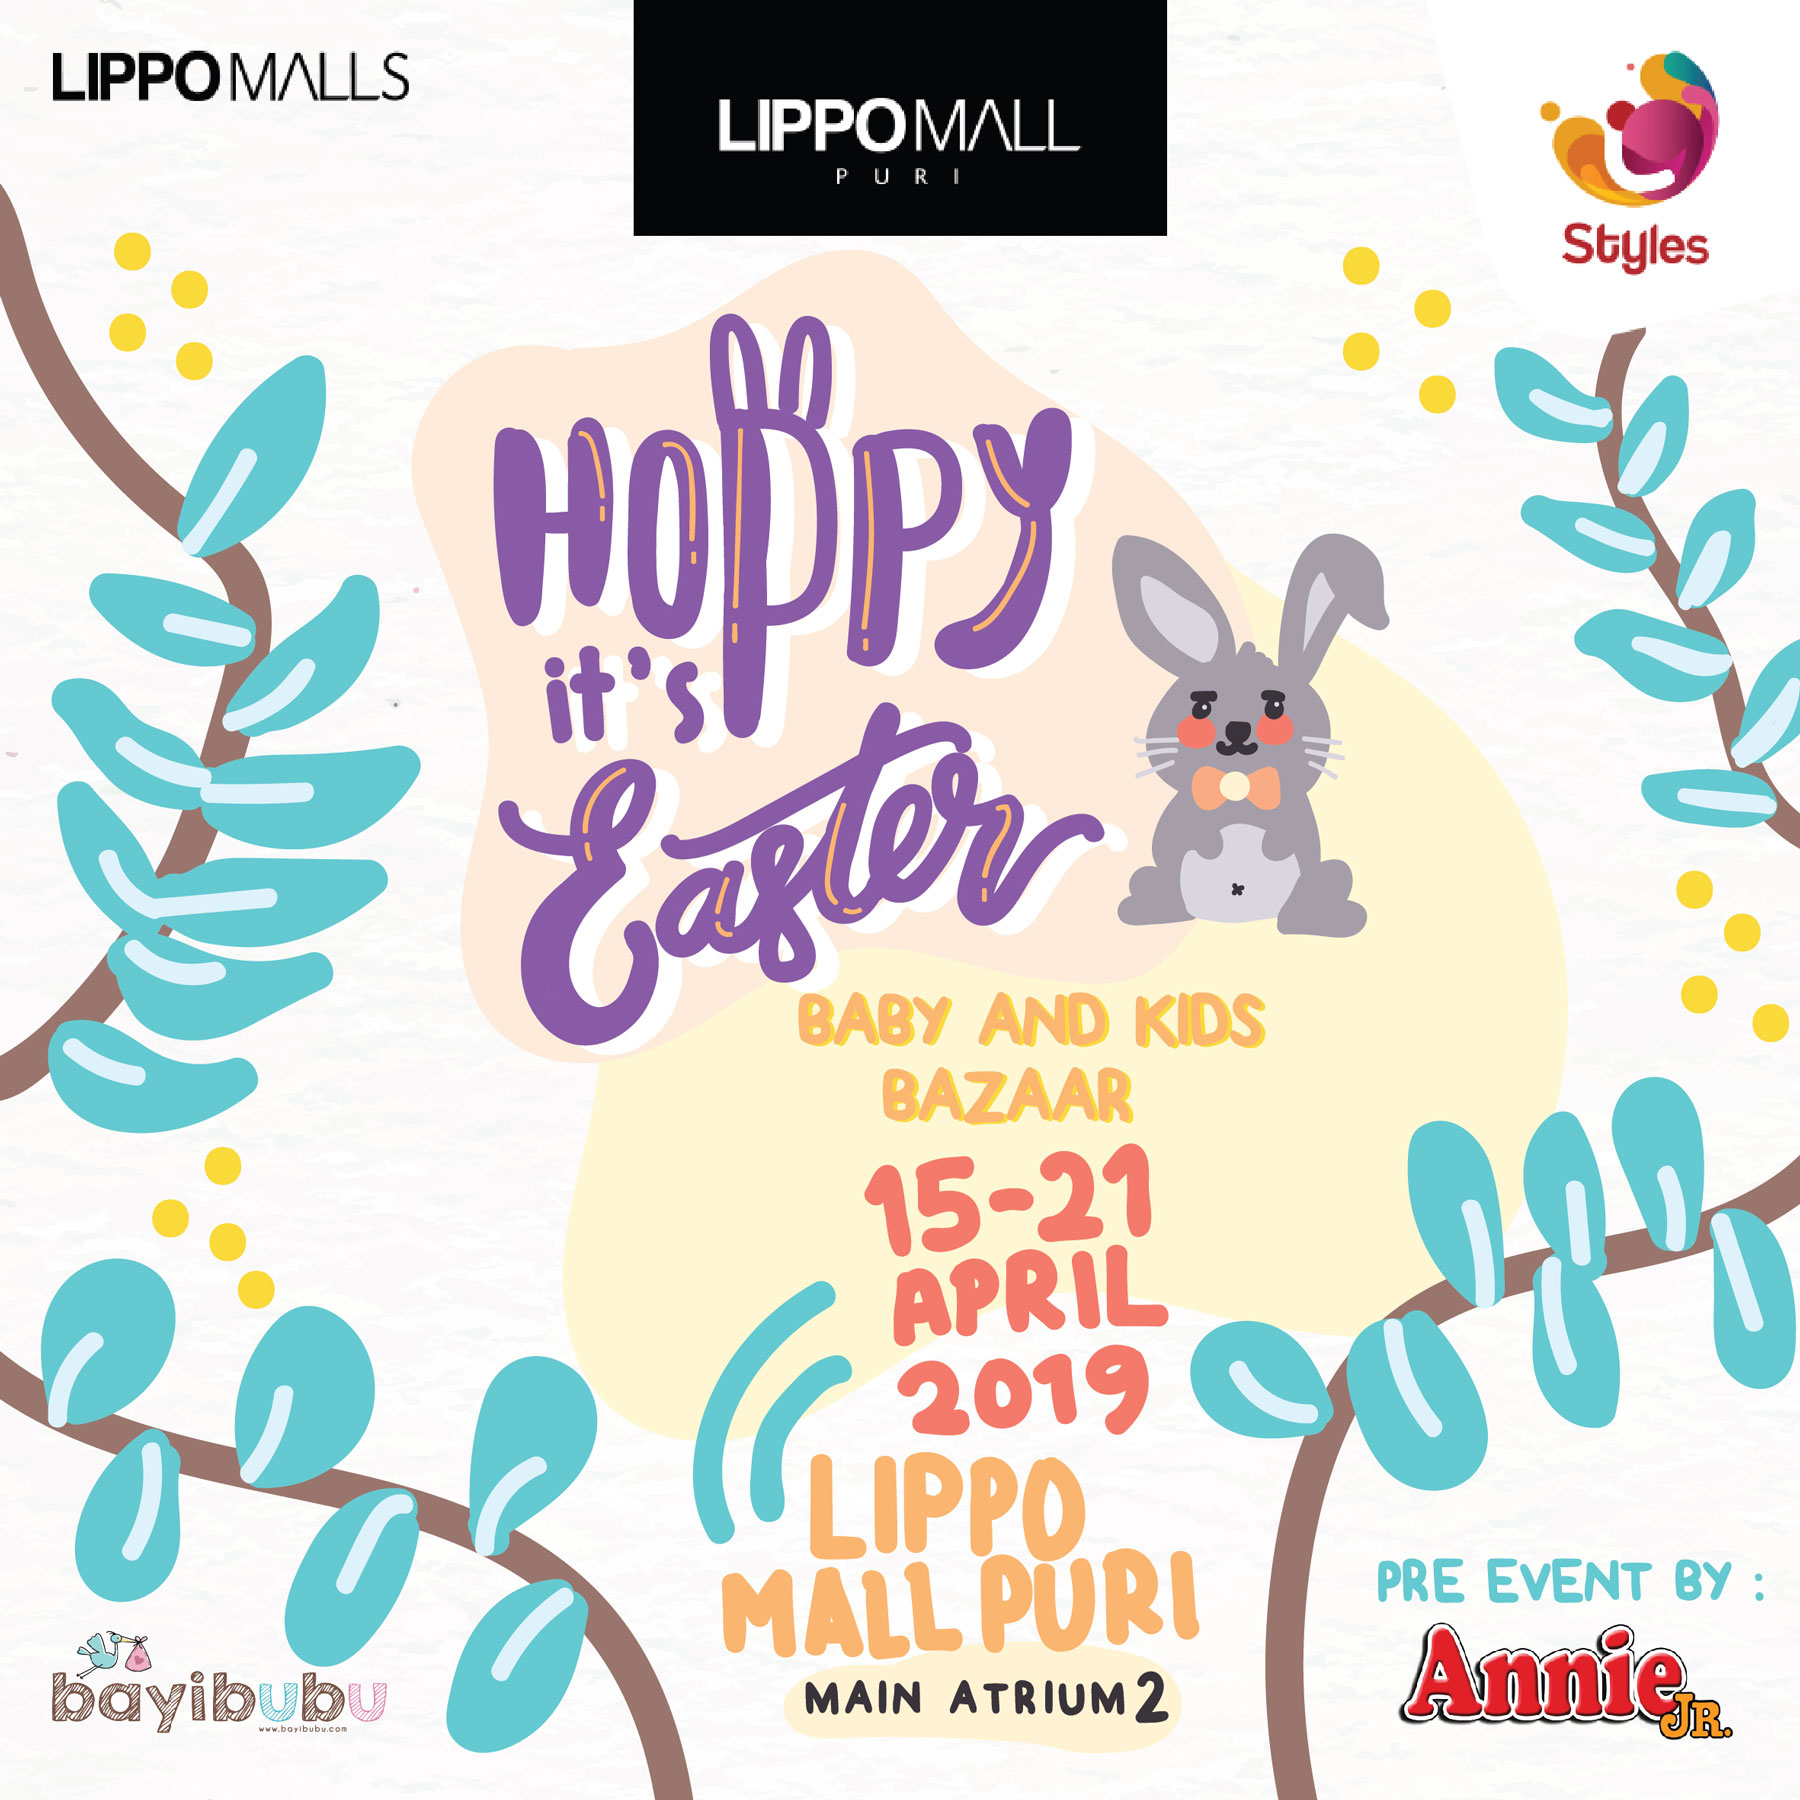 easter baby and kids bazaar event in lippo mall puri st. moritz